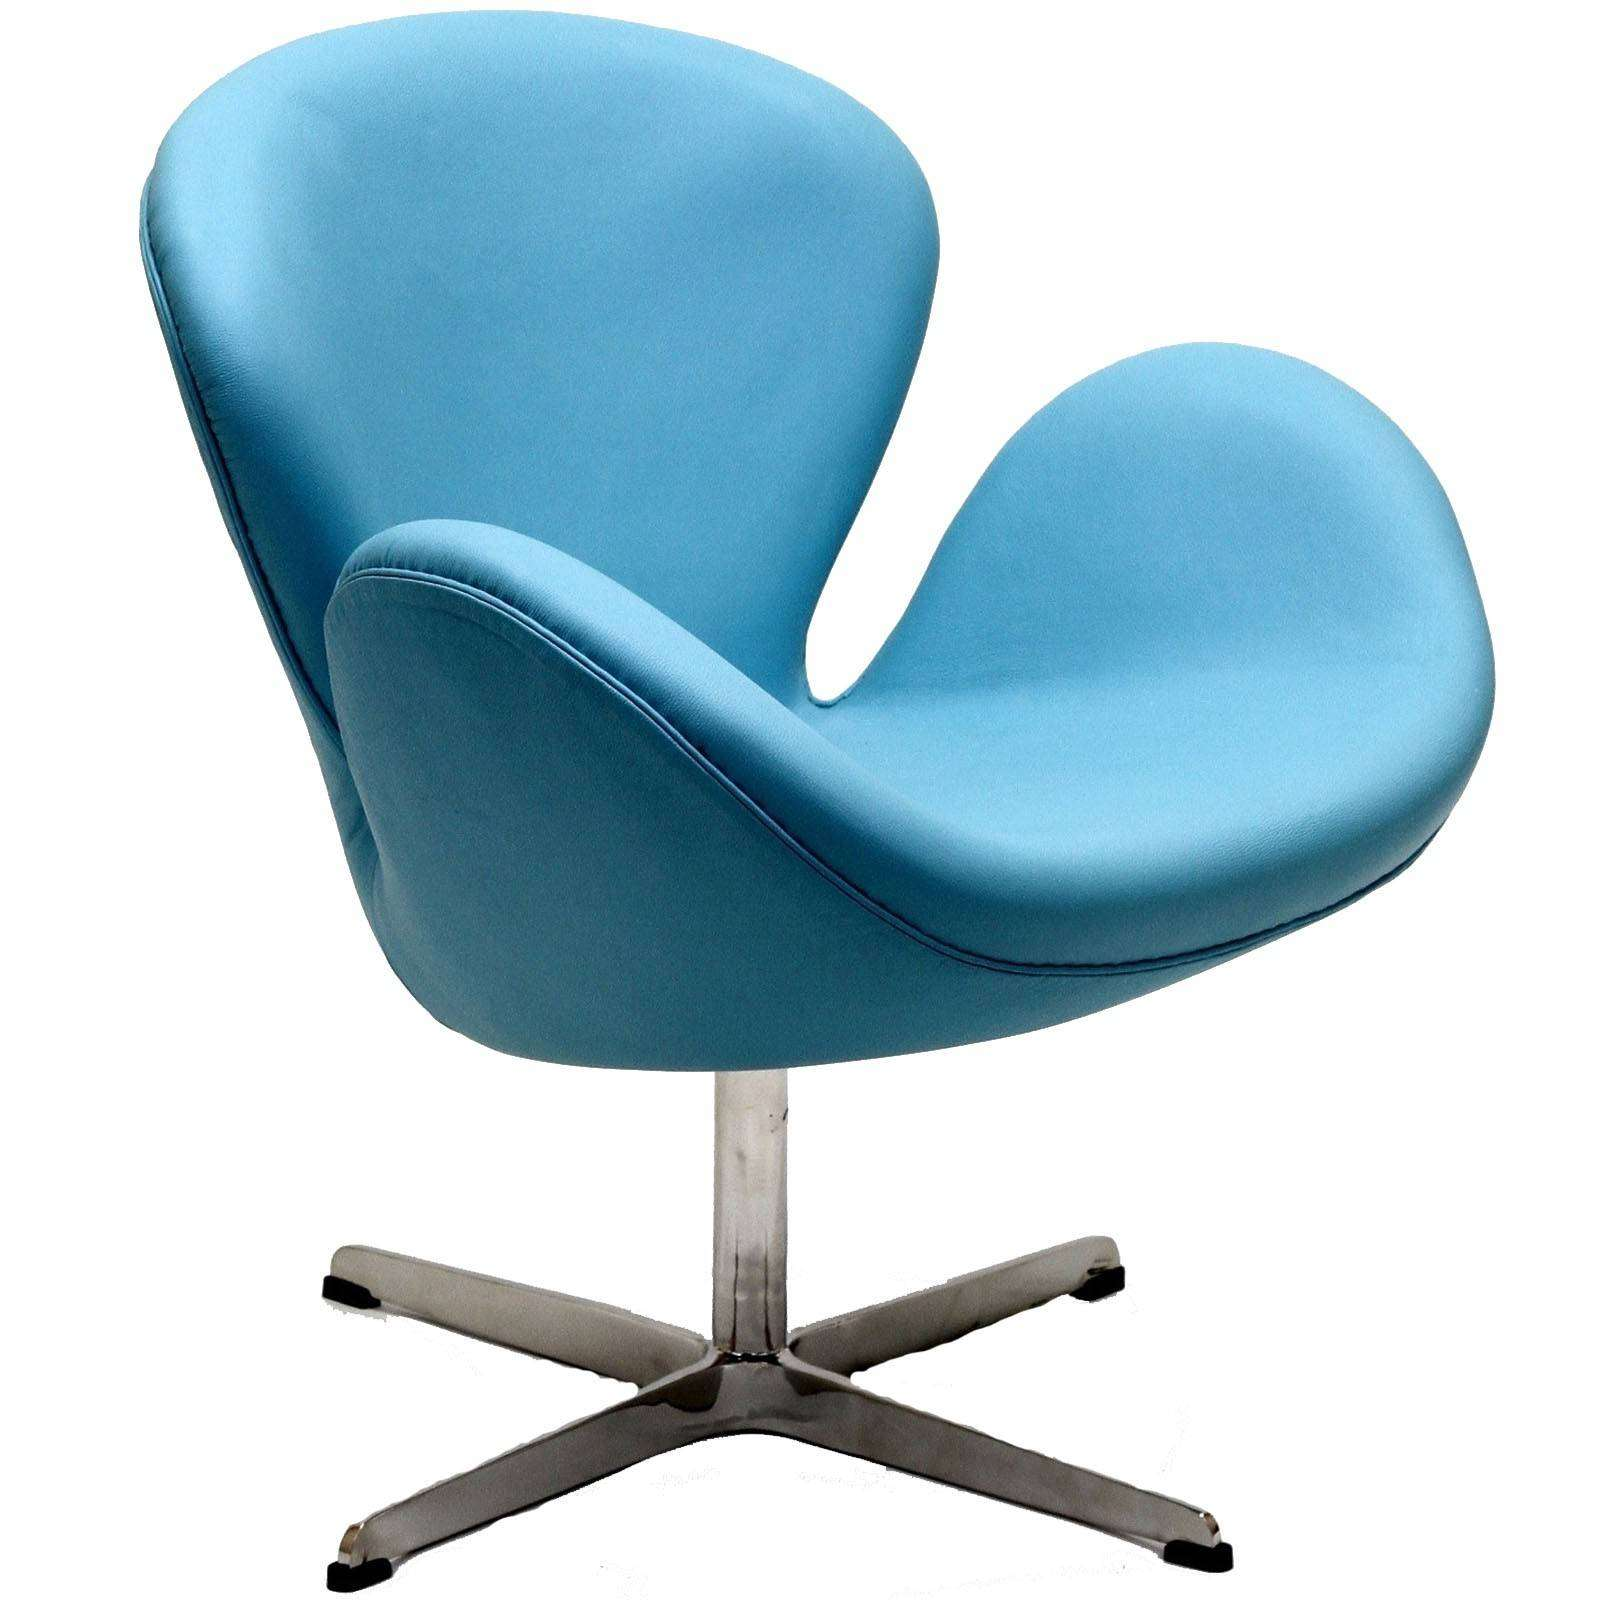 Arne Jacobsen Swan Chair Arne Jacobsen Swan Chair - Leather